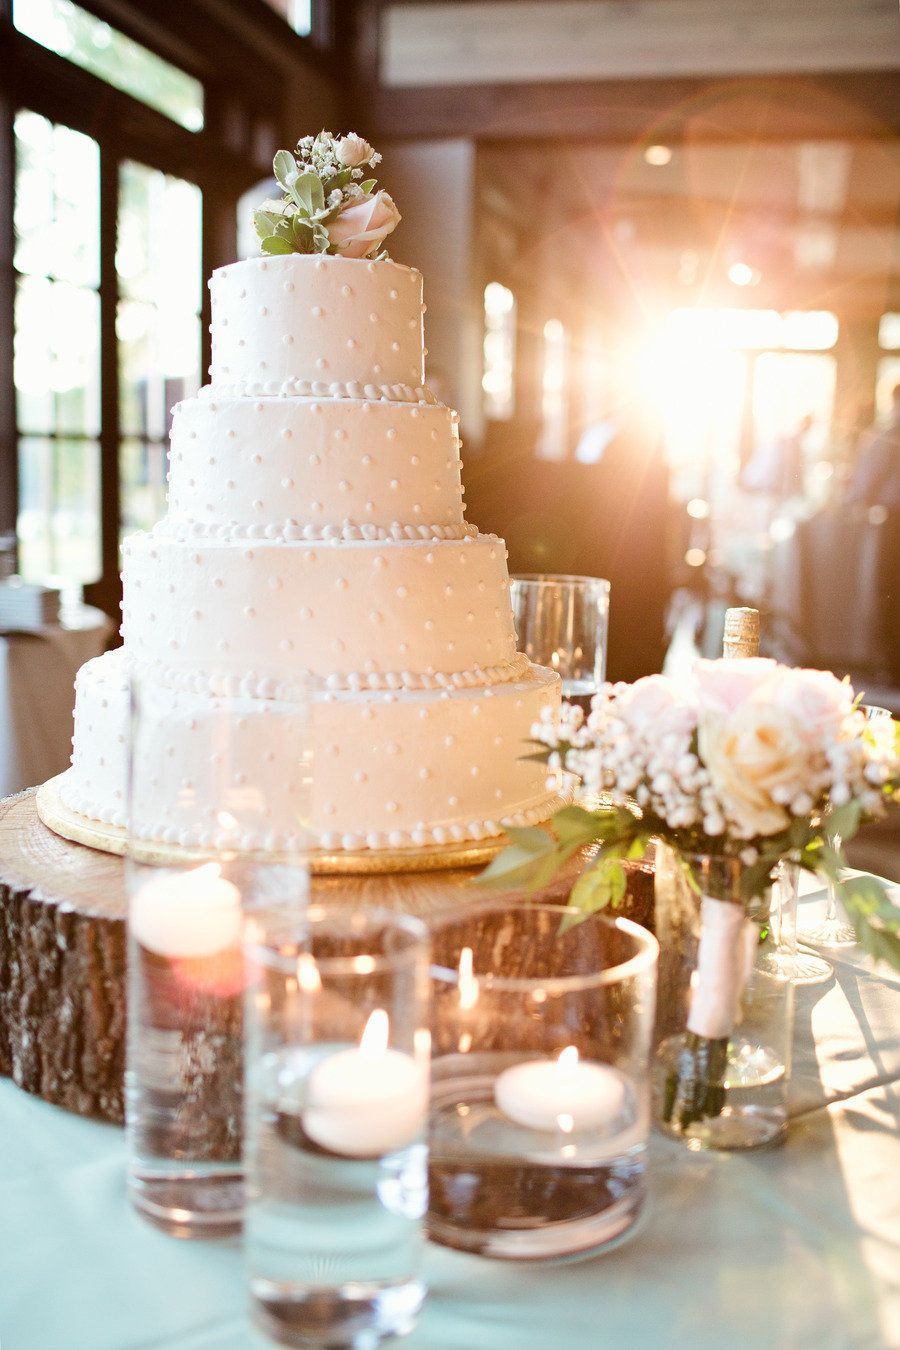 Douglasville Wedding At Foxhall Resort From Gracie Blue Photography Publix CakeWedding